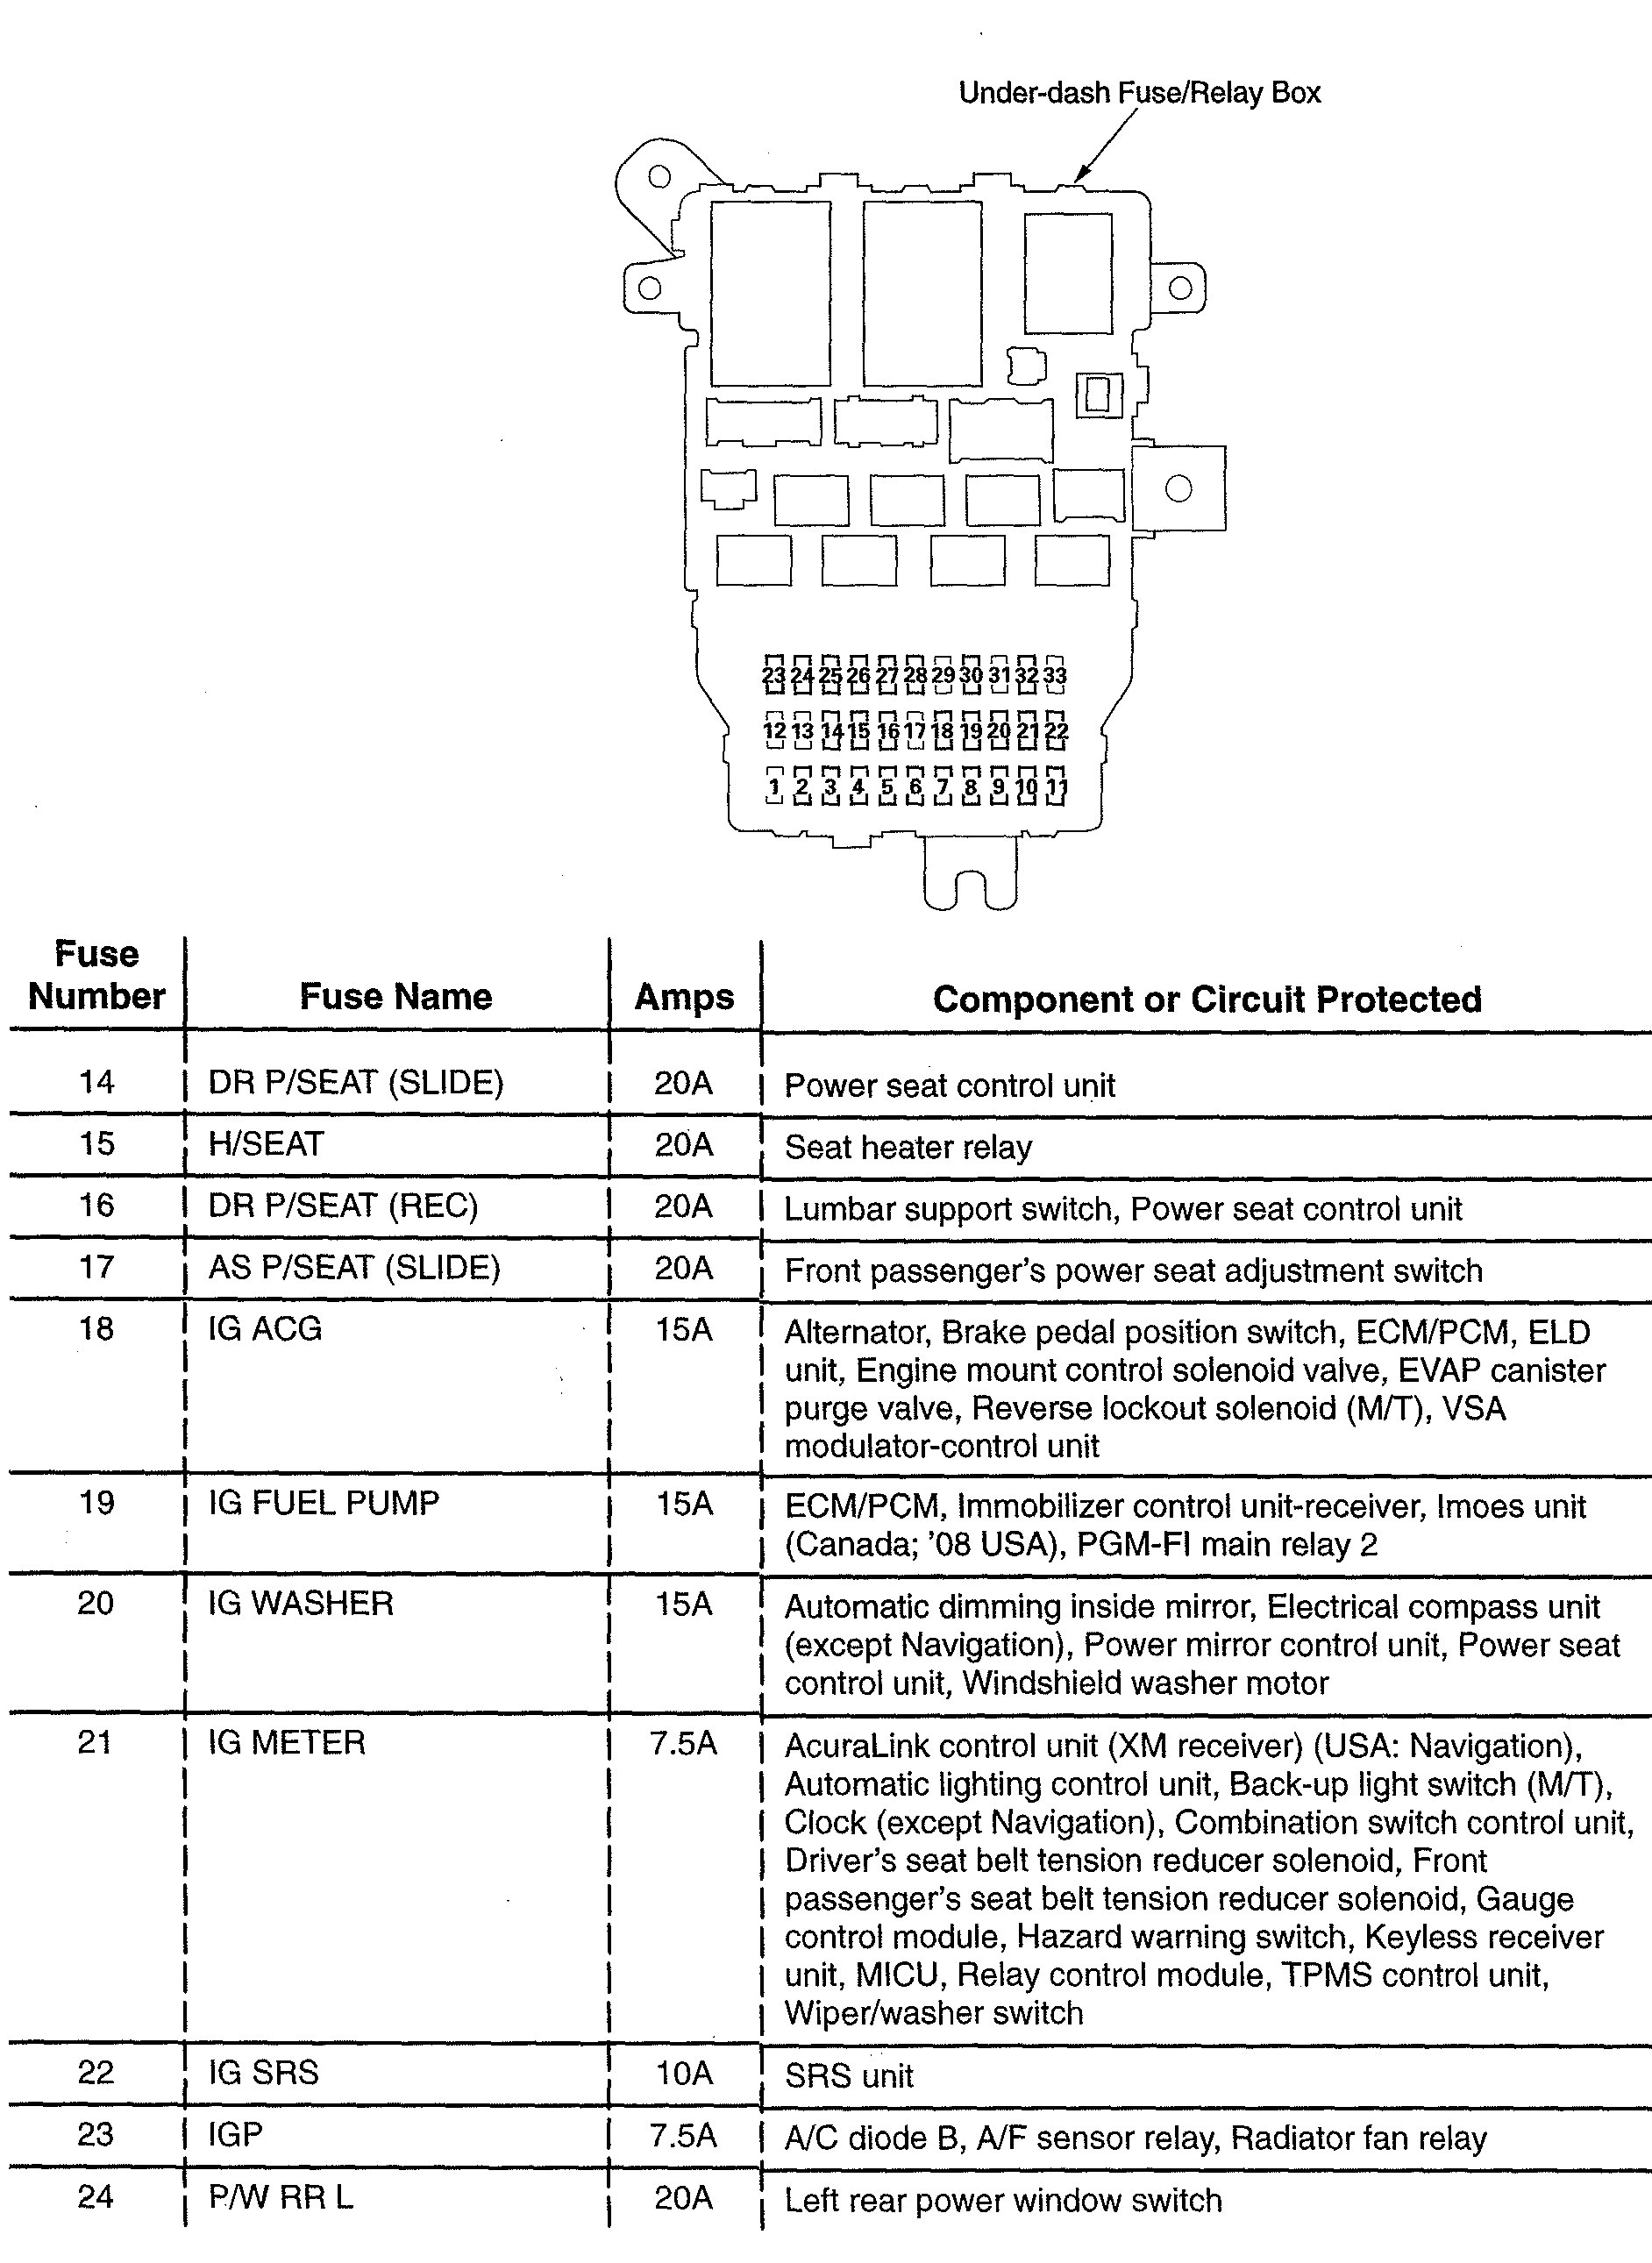 acura tl wiring diagram fuse panel 2 2008 acura tl (2008) wiring diagrams fuse panel carknowledge 2007 acura tl wiring diagram at cita.asia